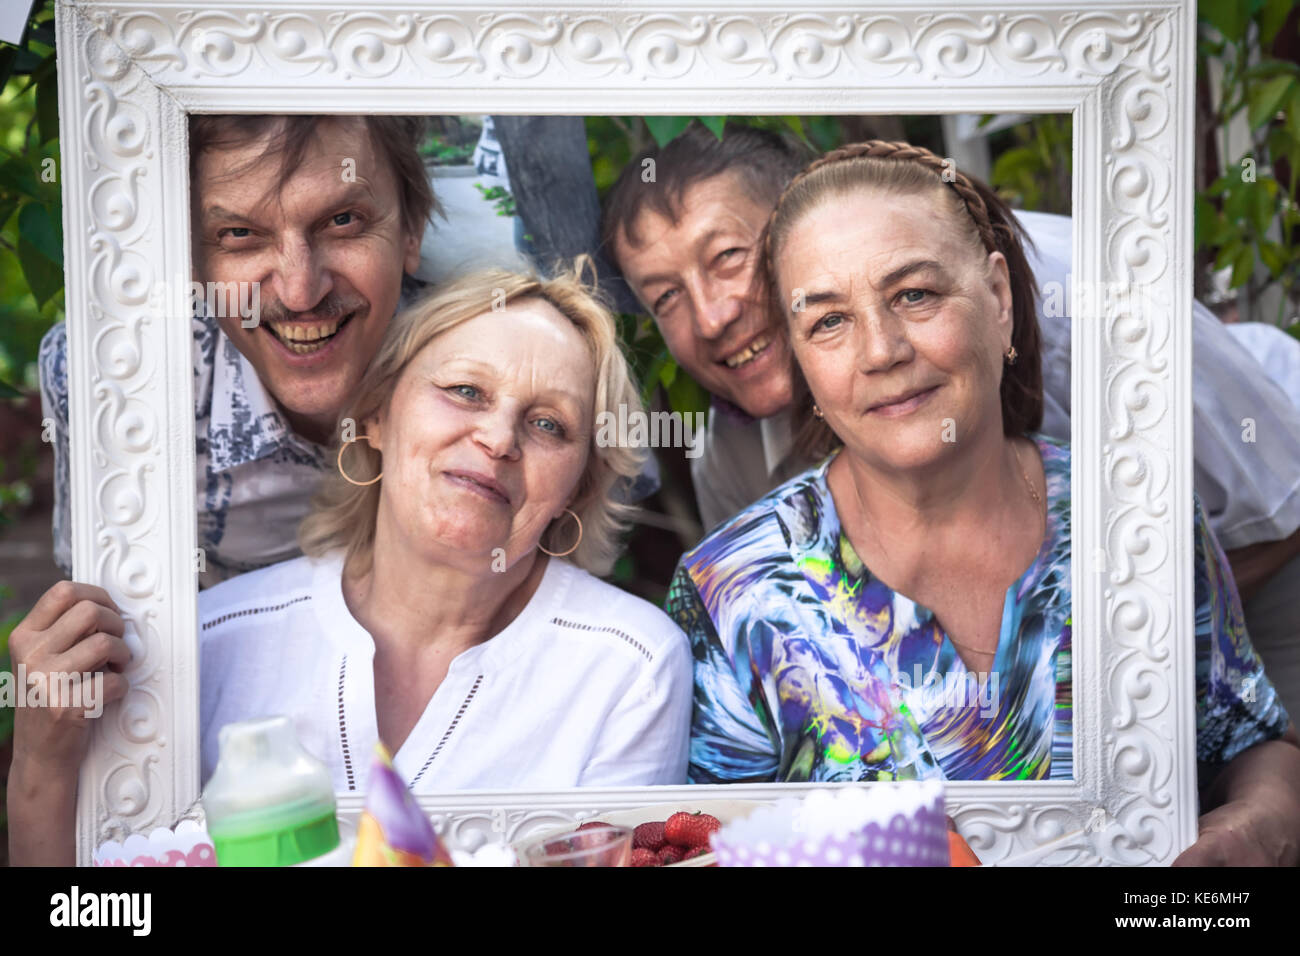 Group of embracing cheerful active seniors having fun during backyard party - Stock Image